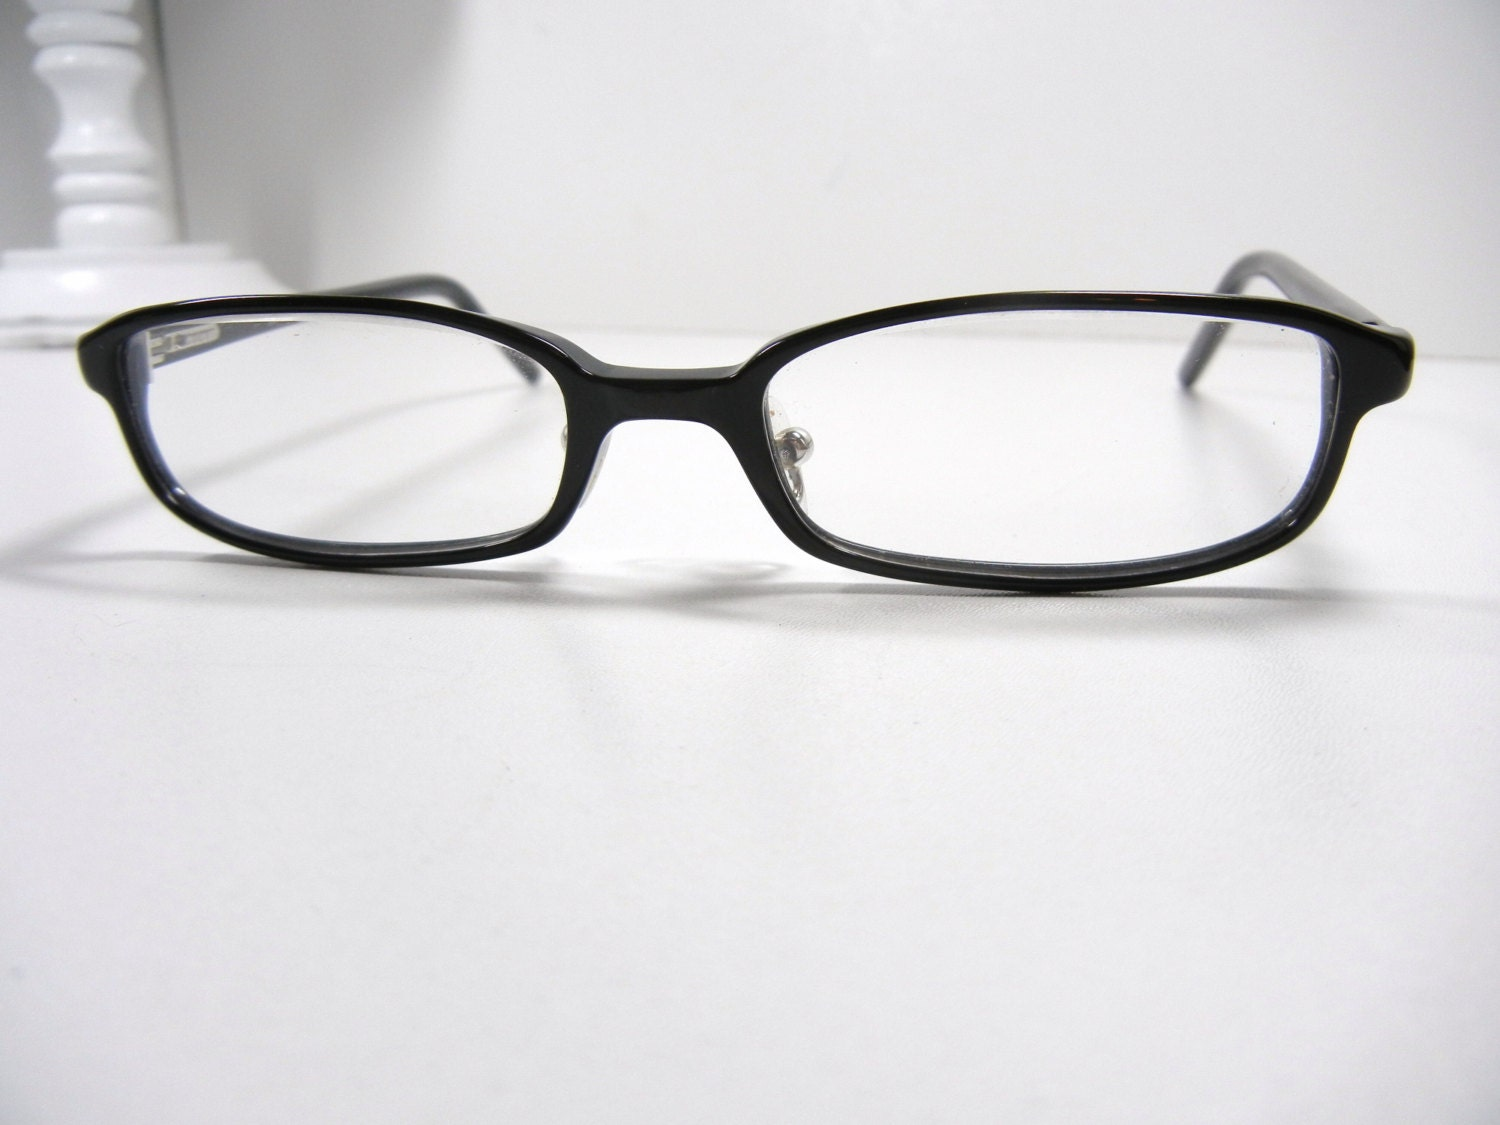 Glasses Frames Made In Italy : Authentic GUCCI Eyeglasses / Black 135 / Made in Italy / Back